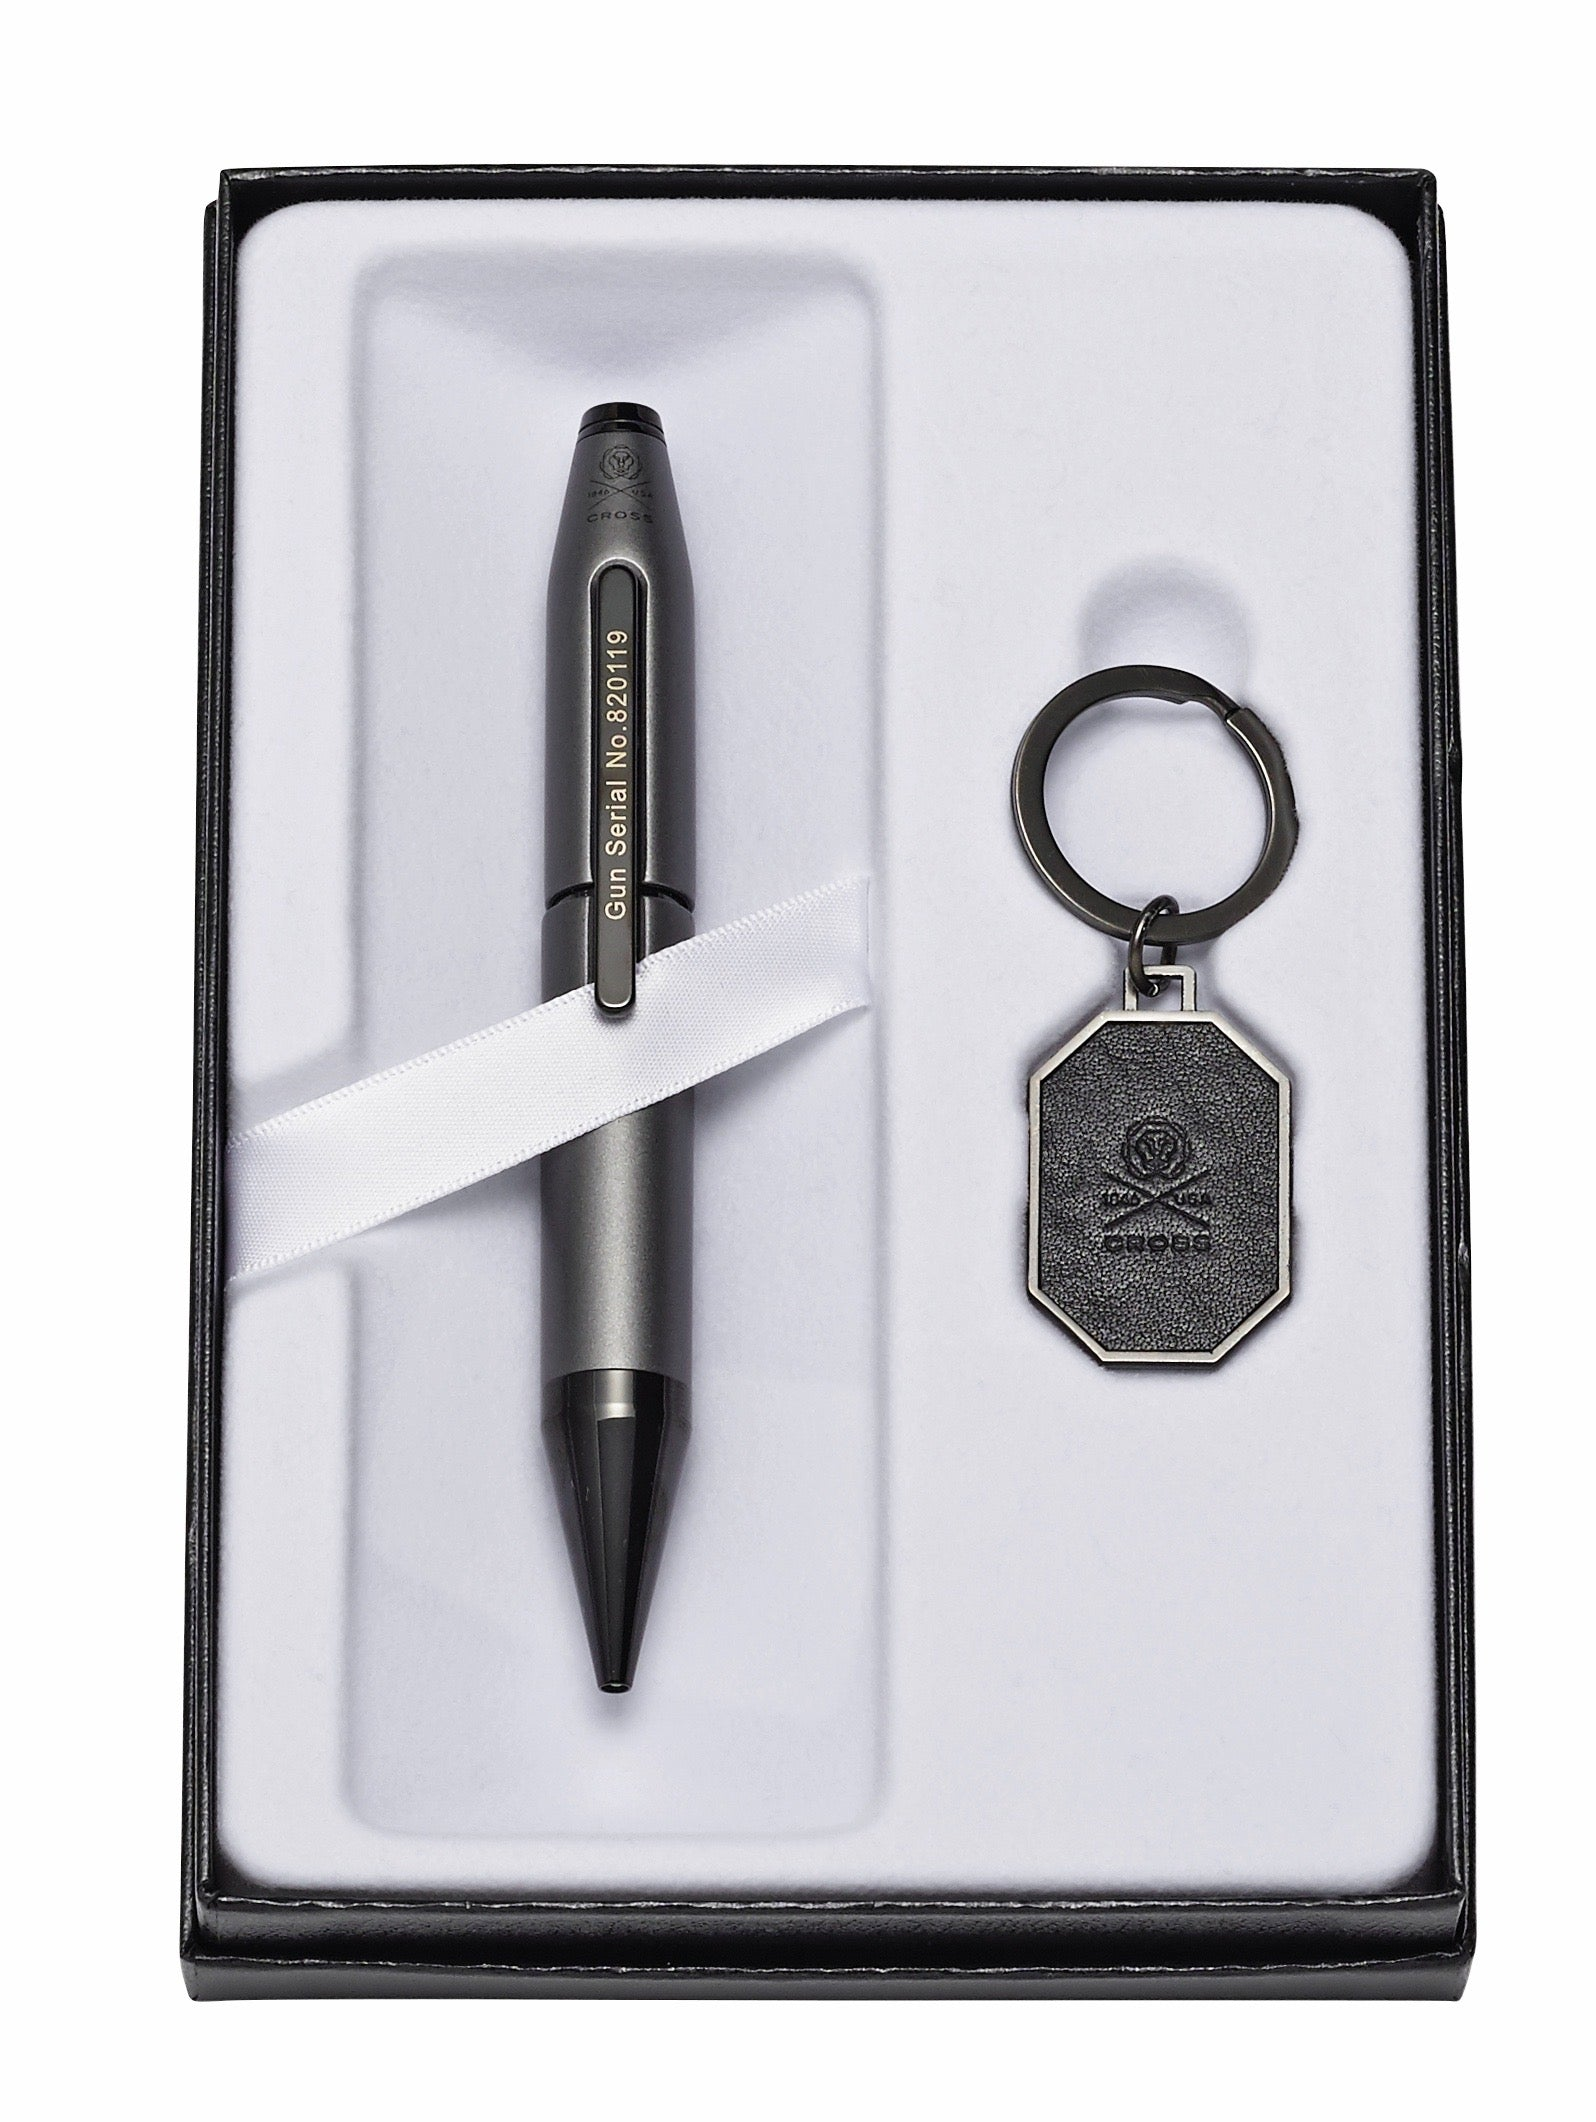 Cross X Liberty United Gift Set -- Rollerball Pen and Leather Key Chain